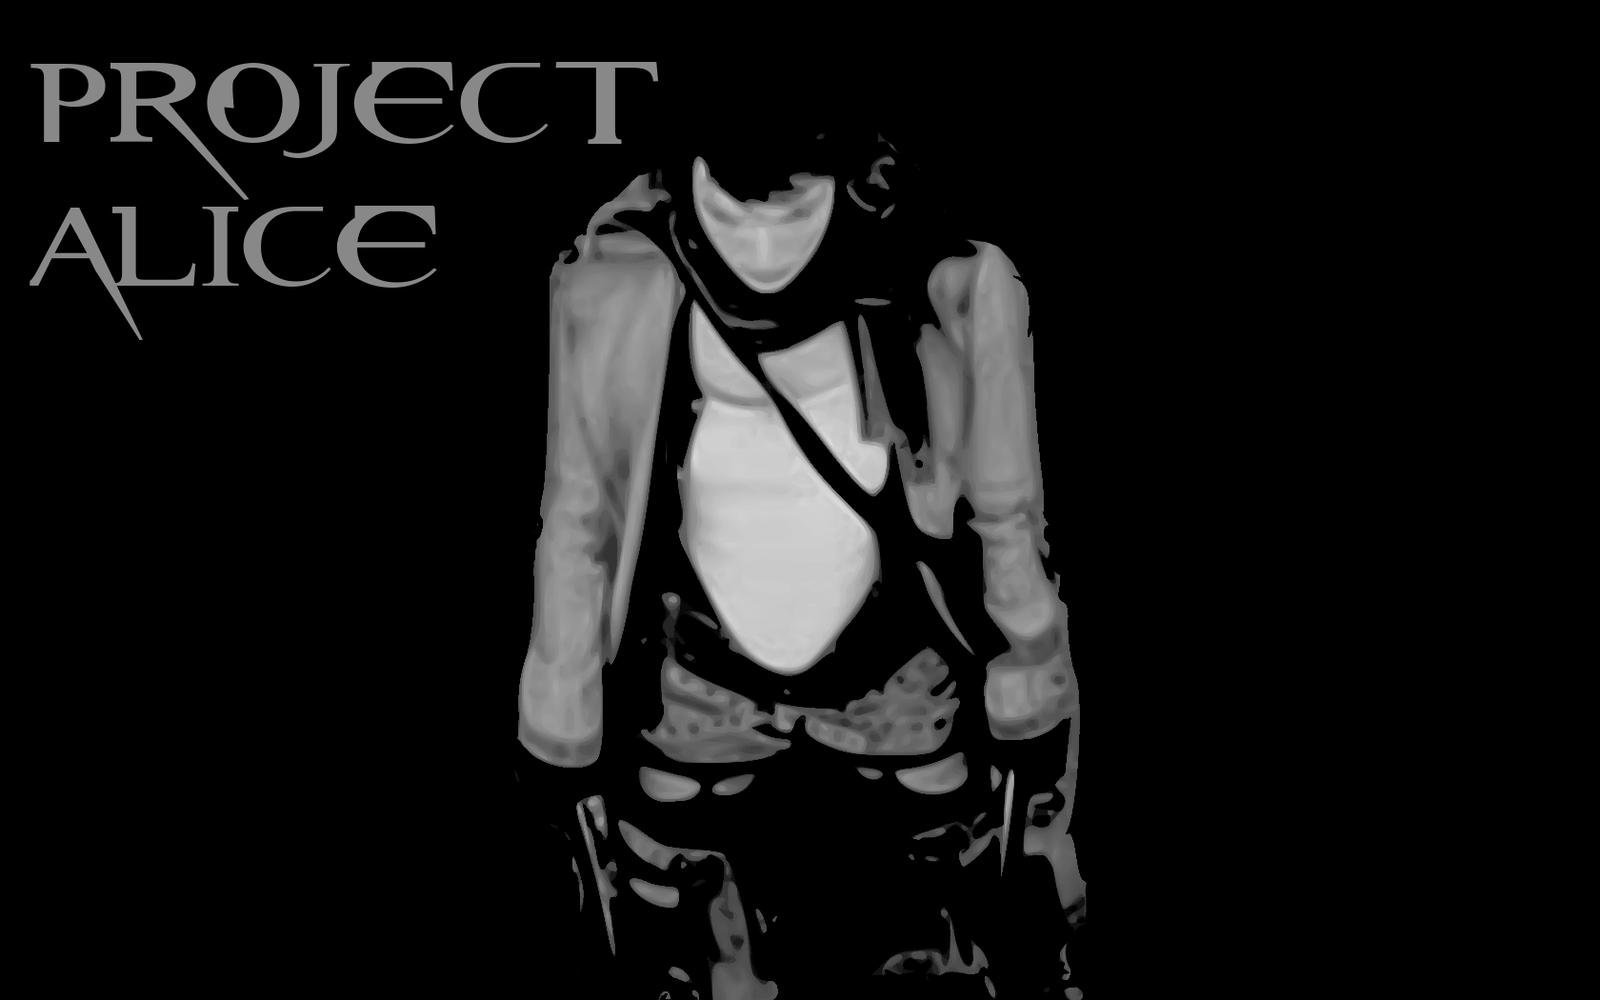 Project Alice